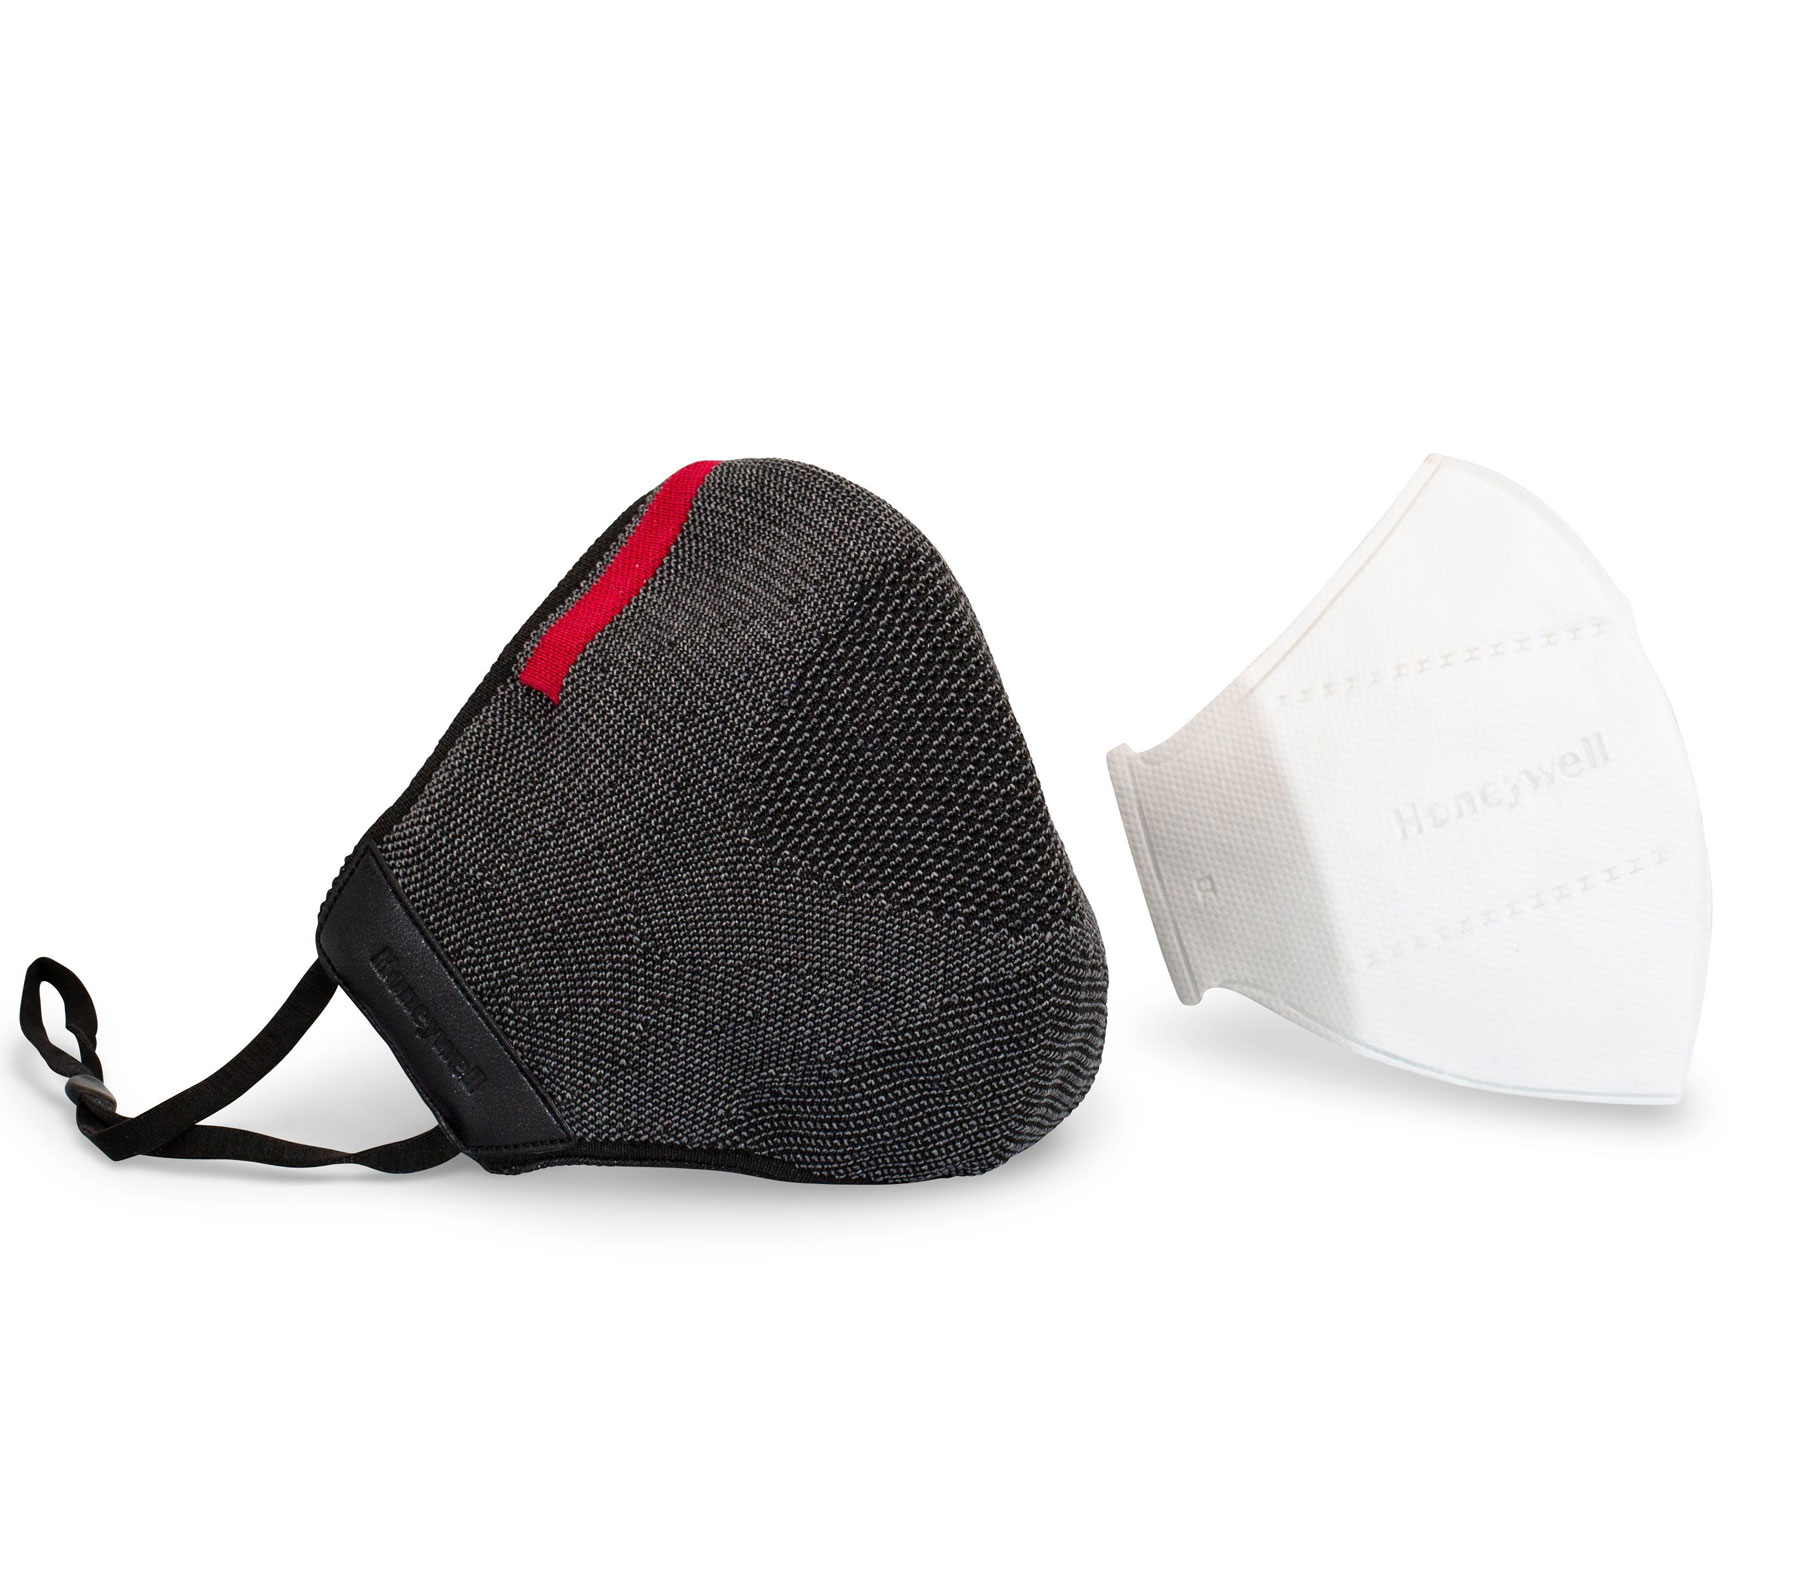 Cleverest Items 2020 - Honeywell Dual-Layer Face Cover with Replaceable Filters